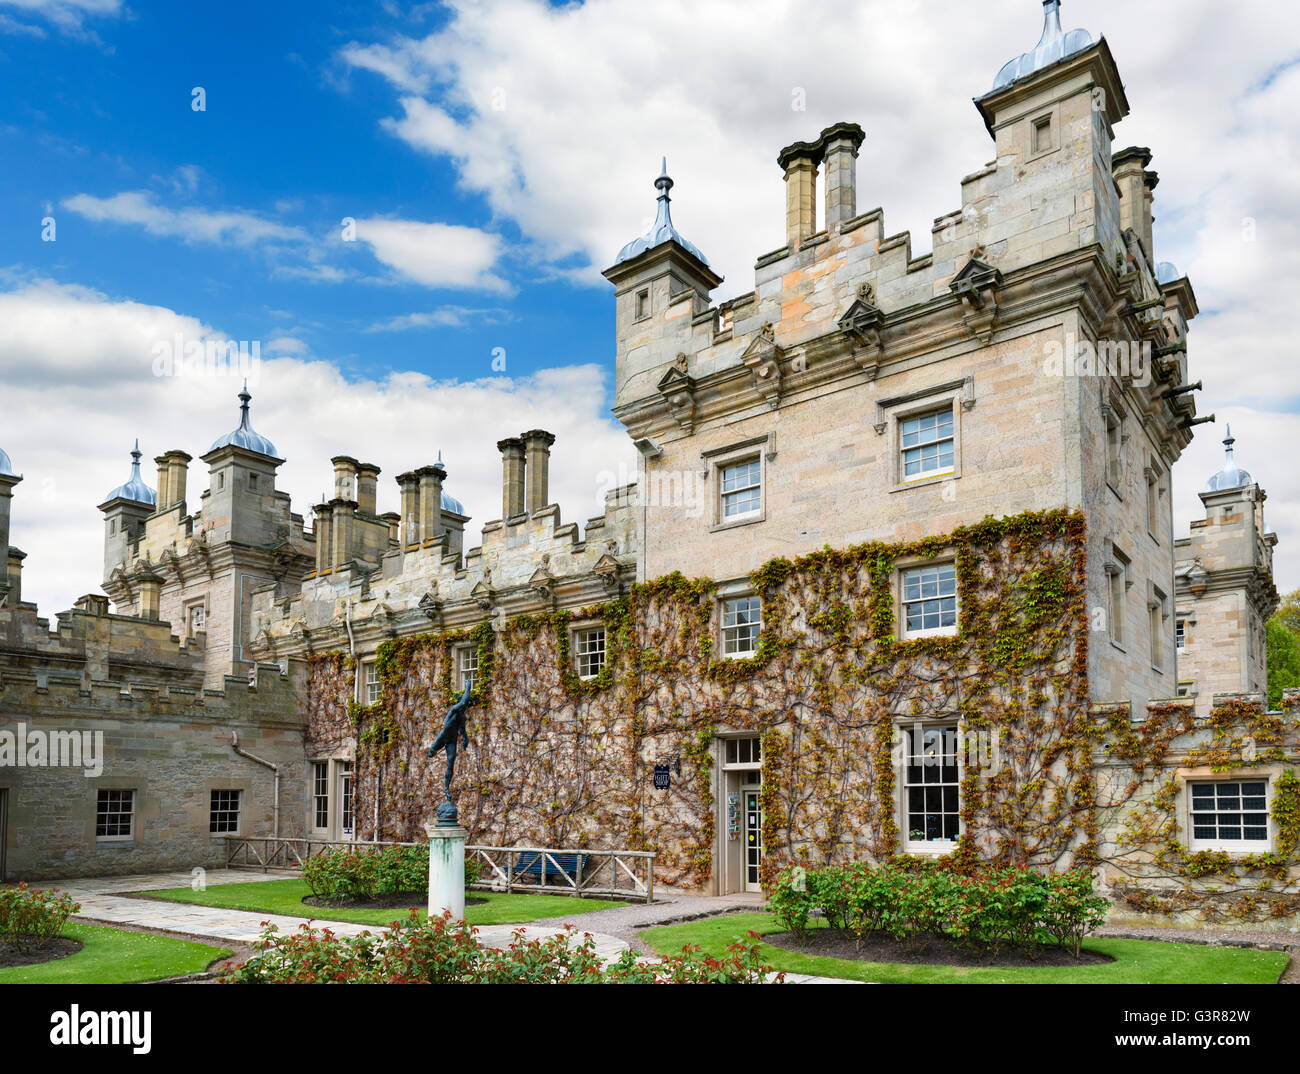 Looking towards the Gift Shop at Floors Castle, seat of the Duke of Roxburghe, Kelso, Scottish Borders, Scotland, - Stock Image